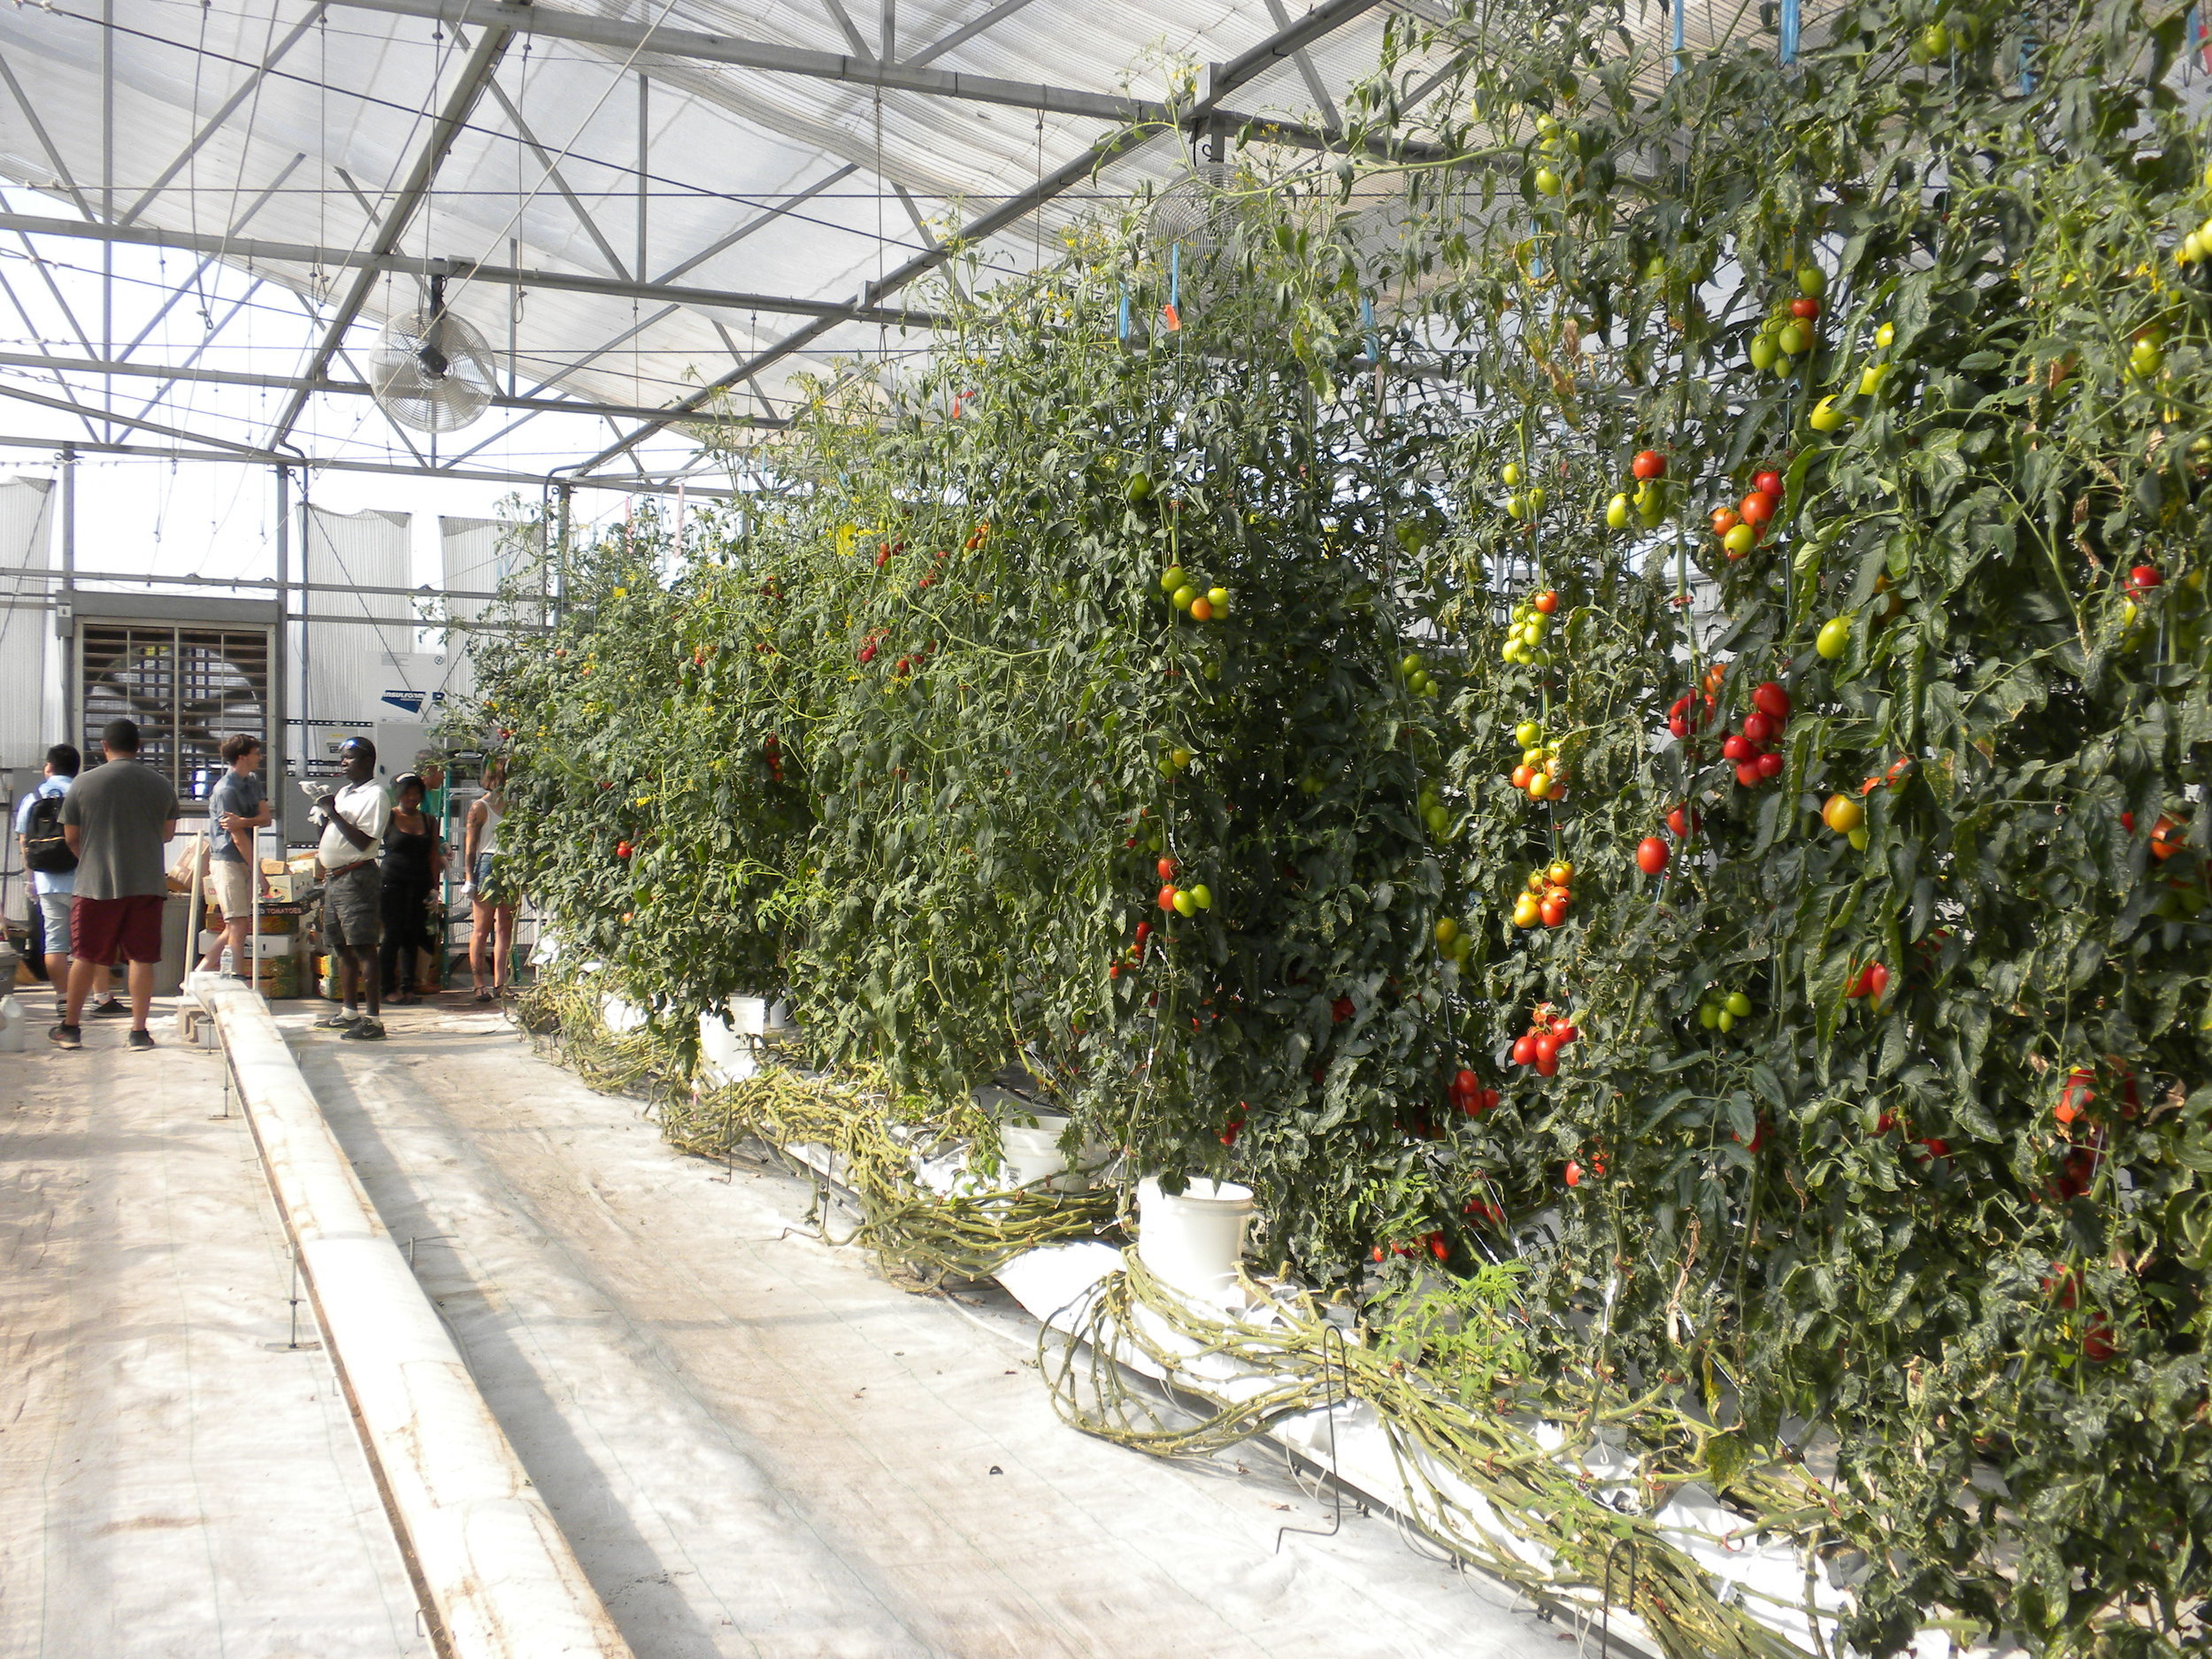 Harvest together - the group spent all morning harvesting hundreds of tomatoes